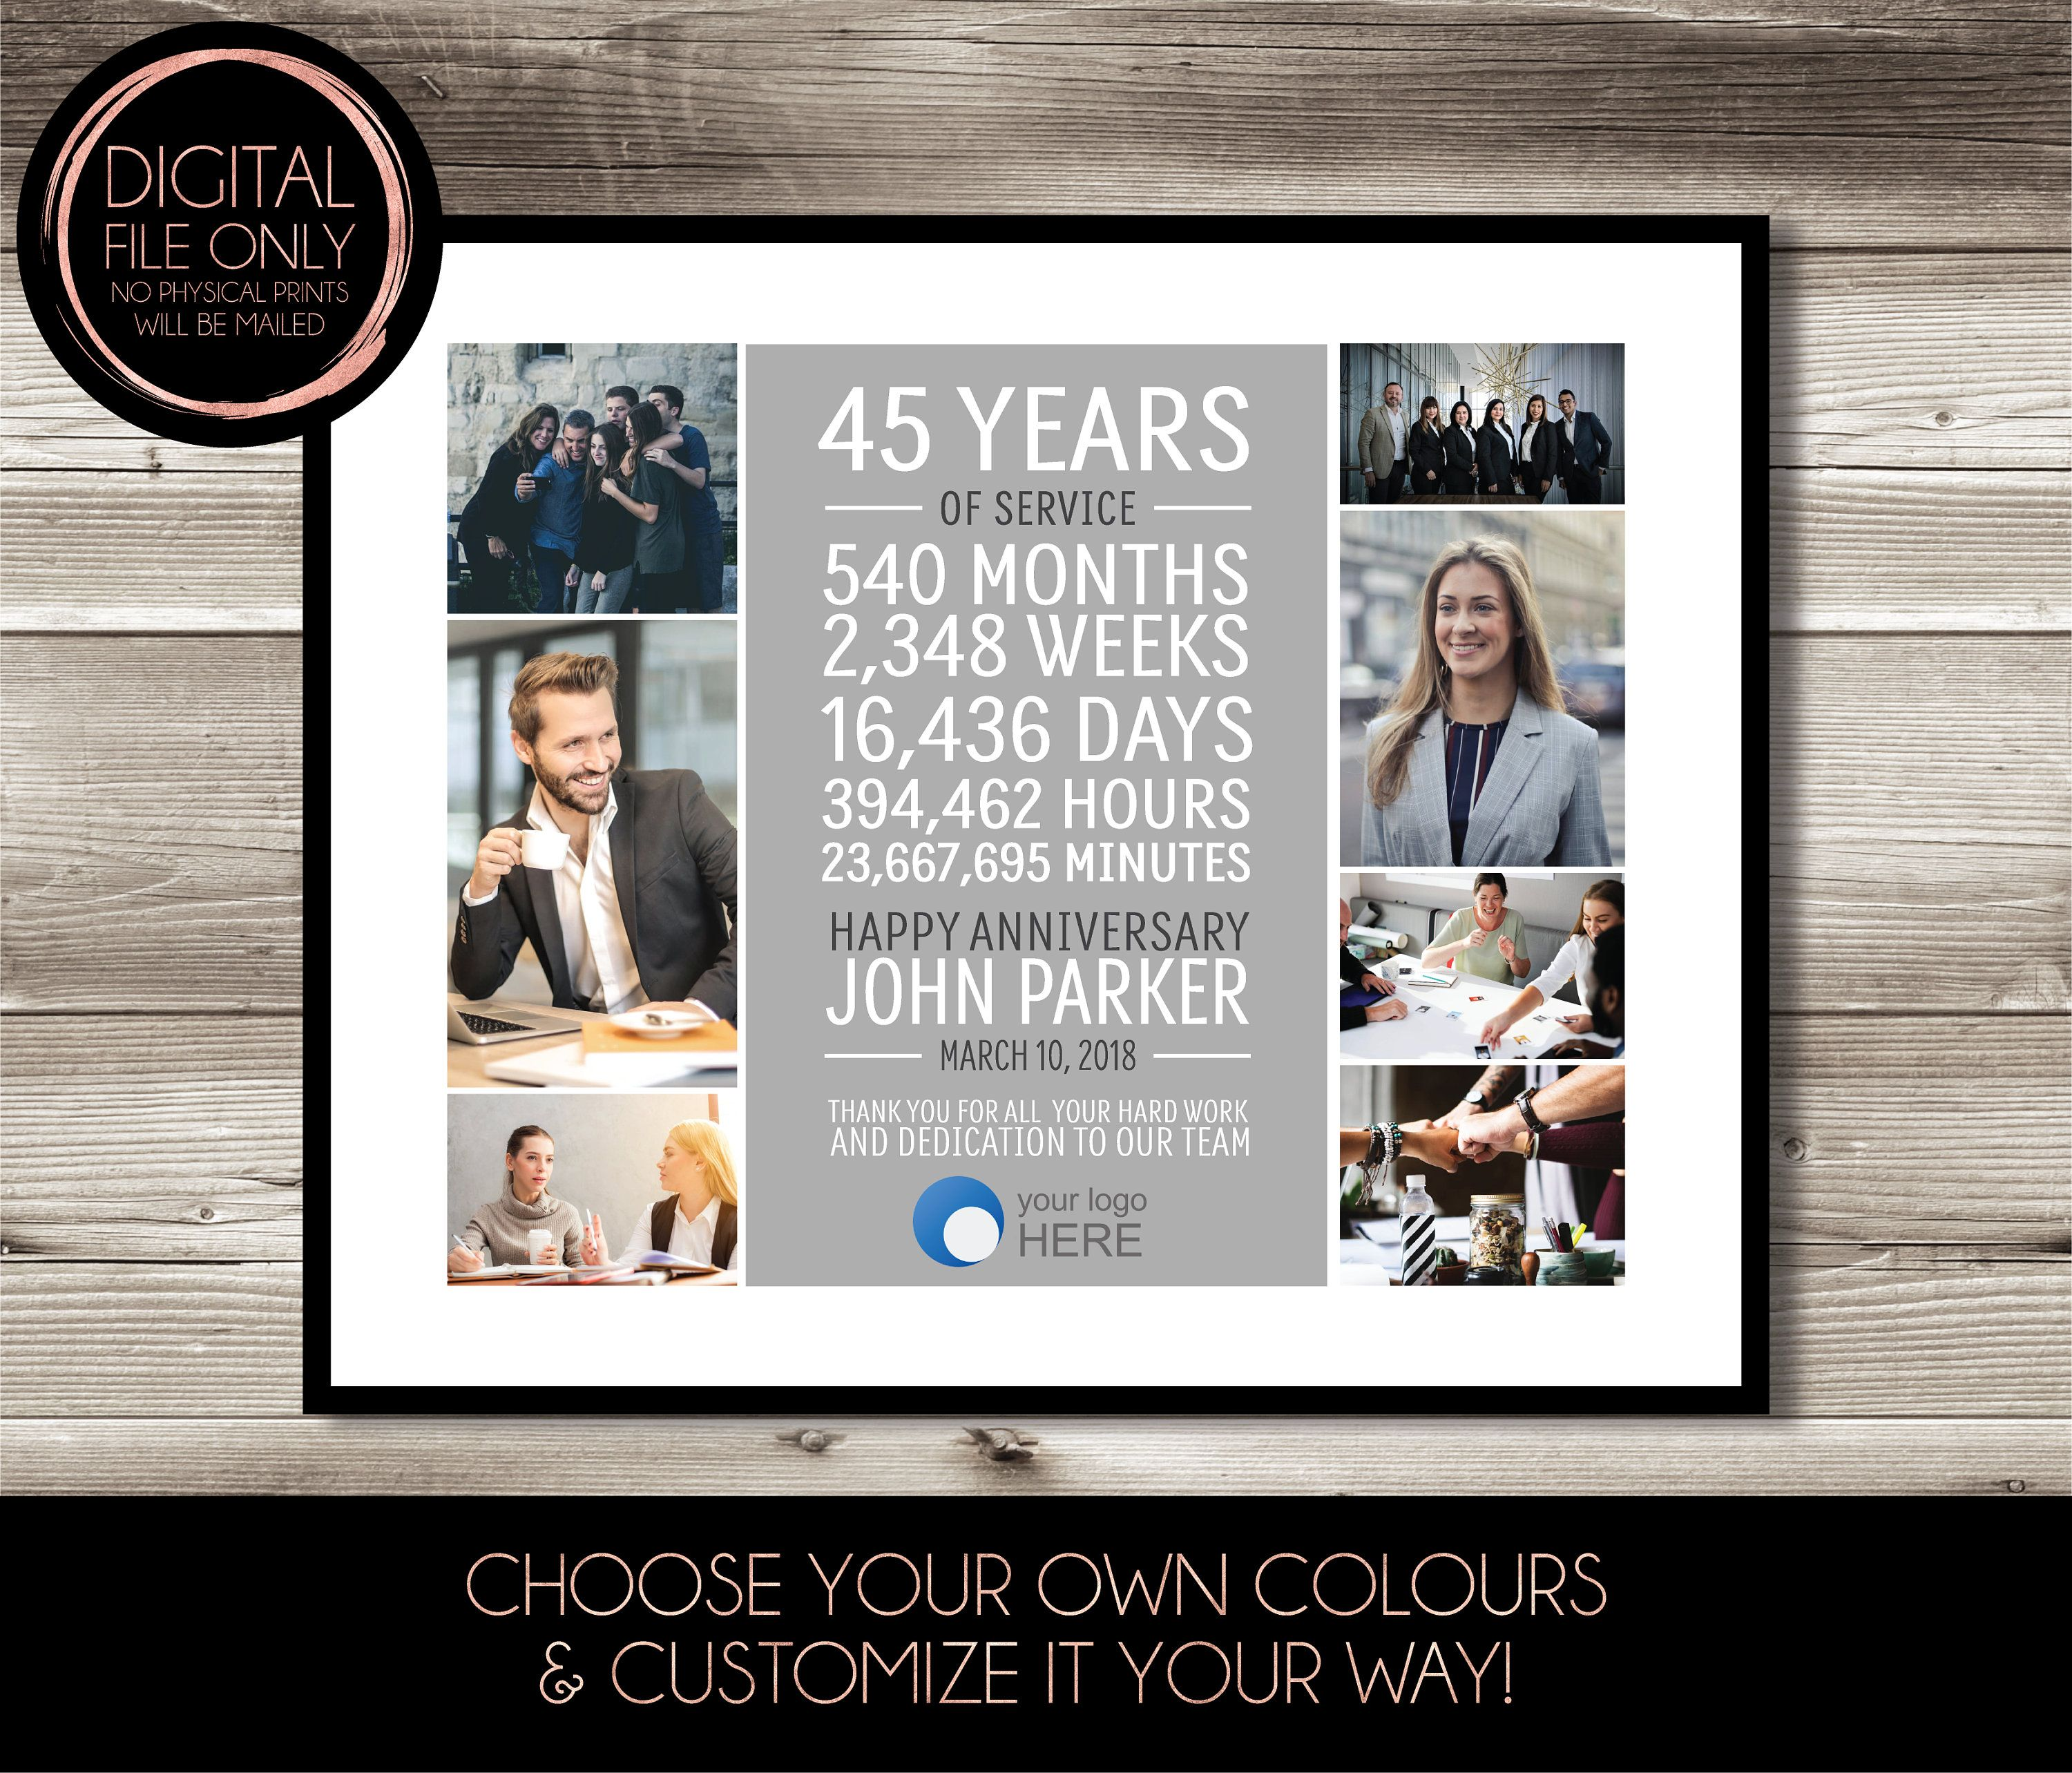 45 Year Work Anniversary Print Photo Collage Customizable Thank You Gift Years Of Service Employee Recognition Appreciation Gift Idea Work Anniversary Photo Collage Anniversary Gifts 40 Years